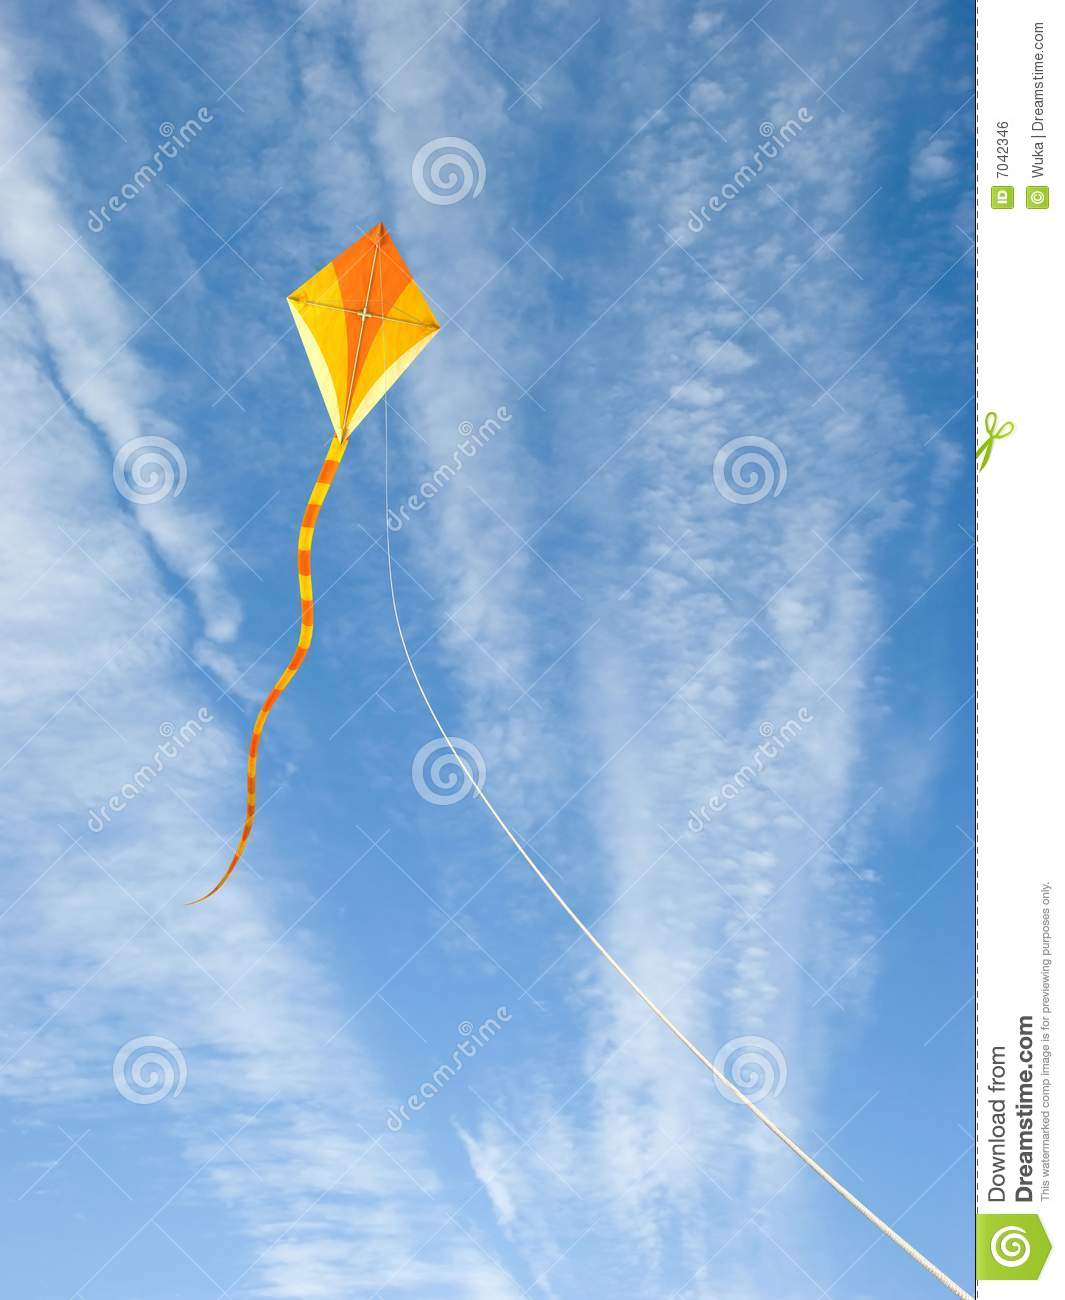 Download Kite in the Sky stock photo. Image of high, cirrus, freedom - 7042346